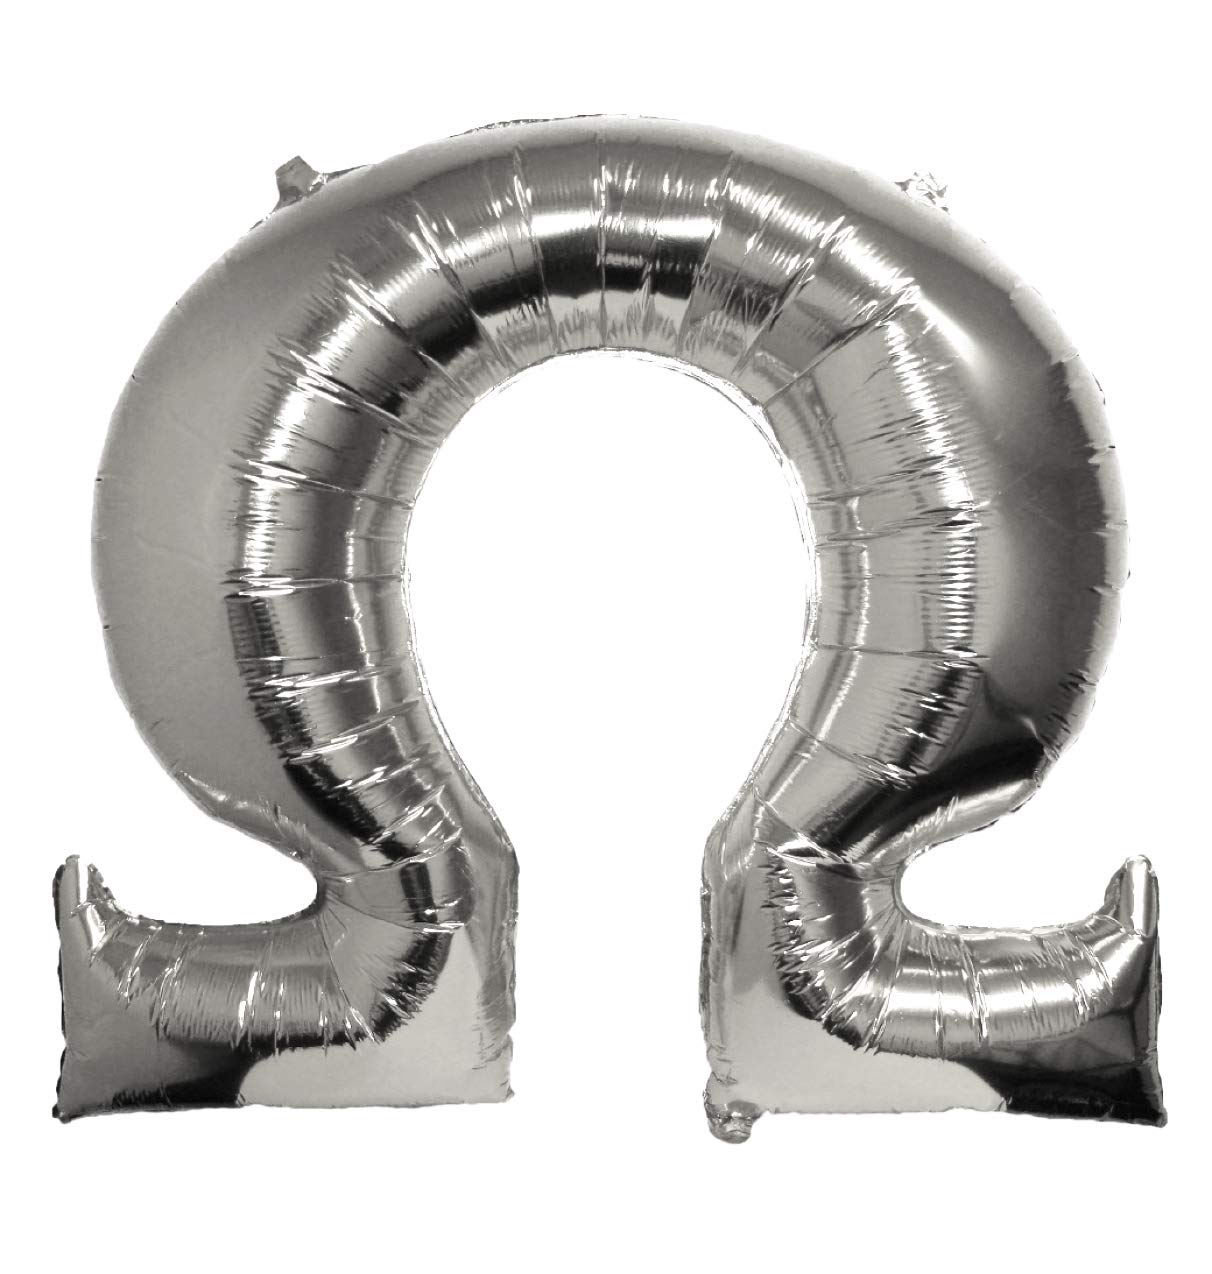 Amazon.com: Omega   Greek Letter Balloon   Silver: Toys & Games